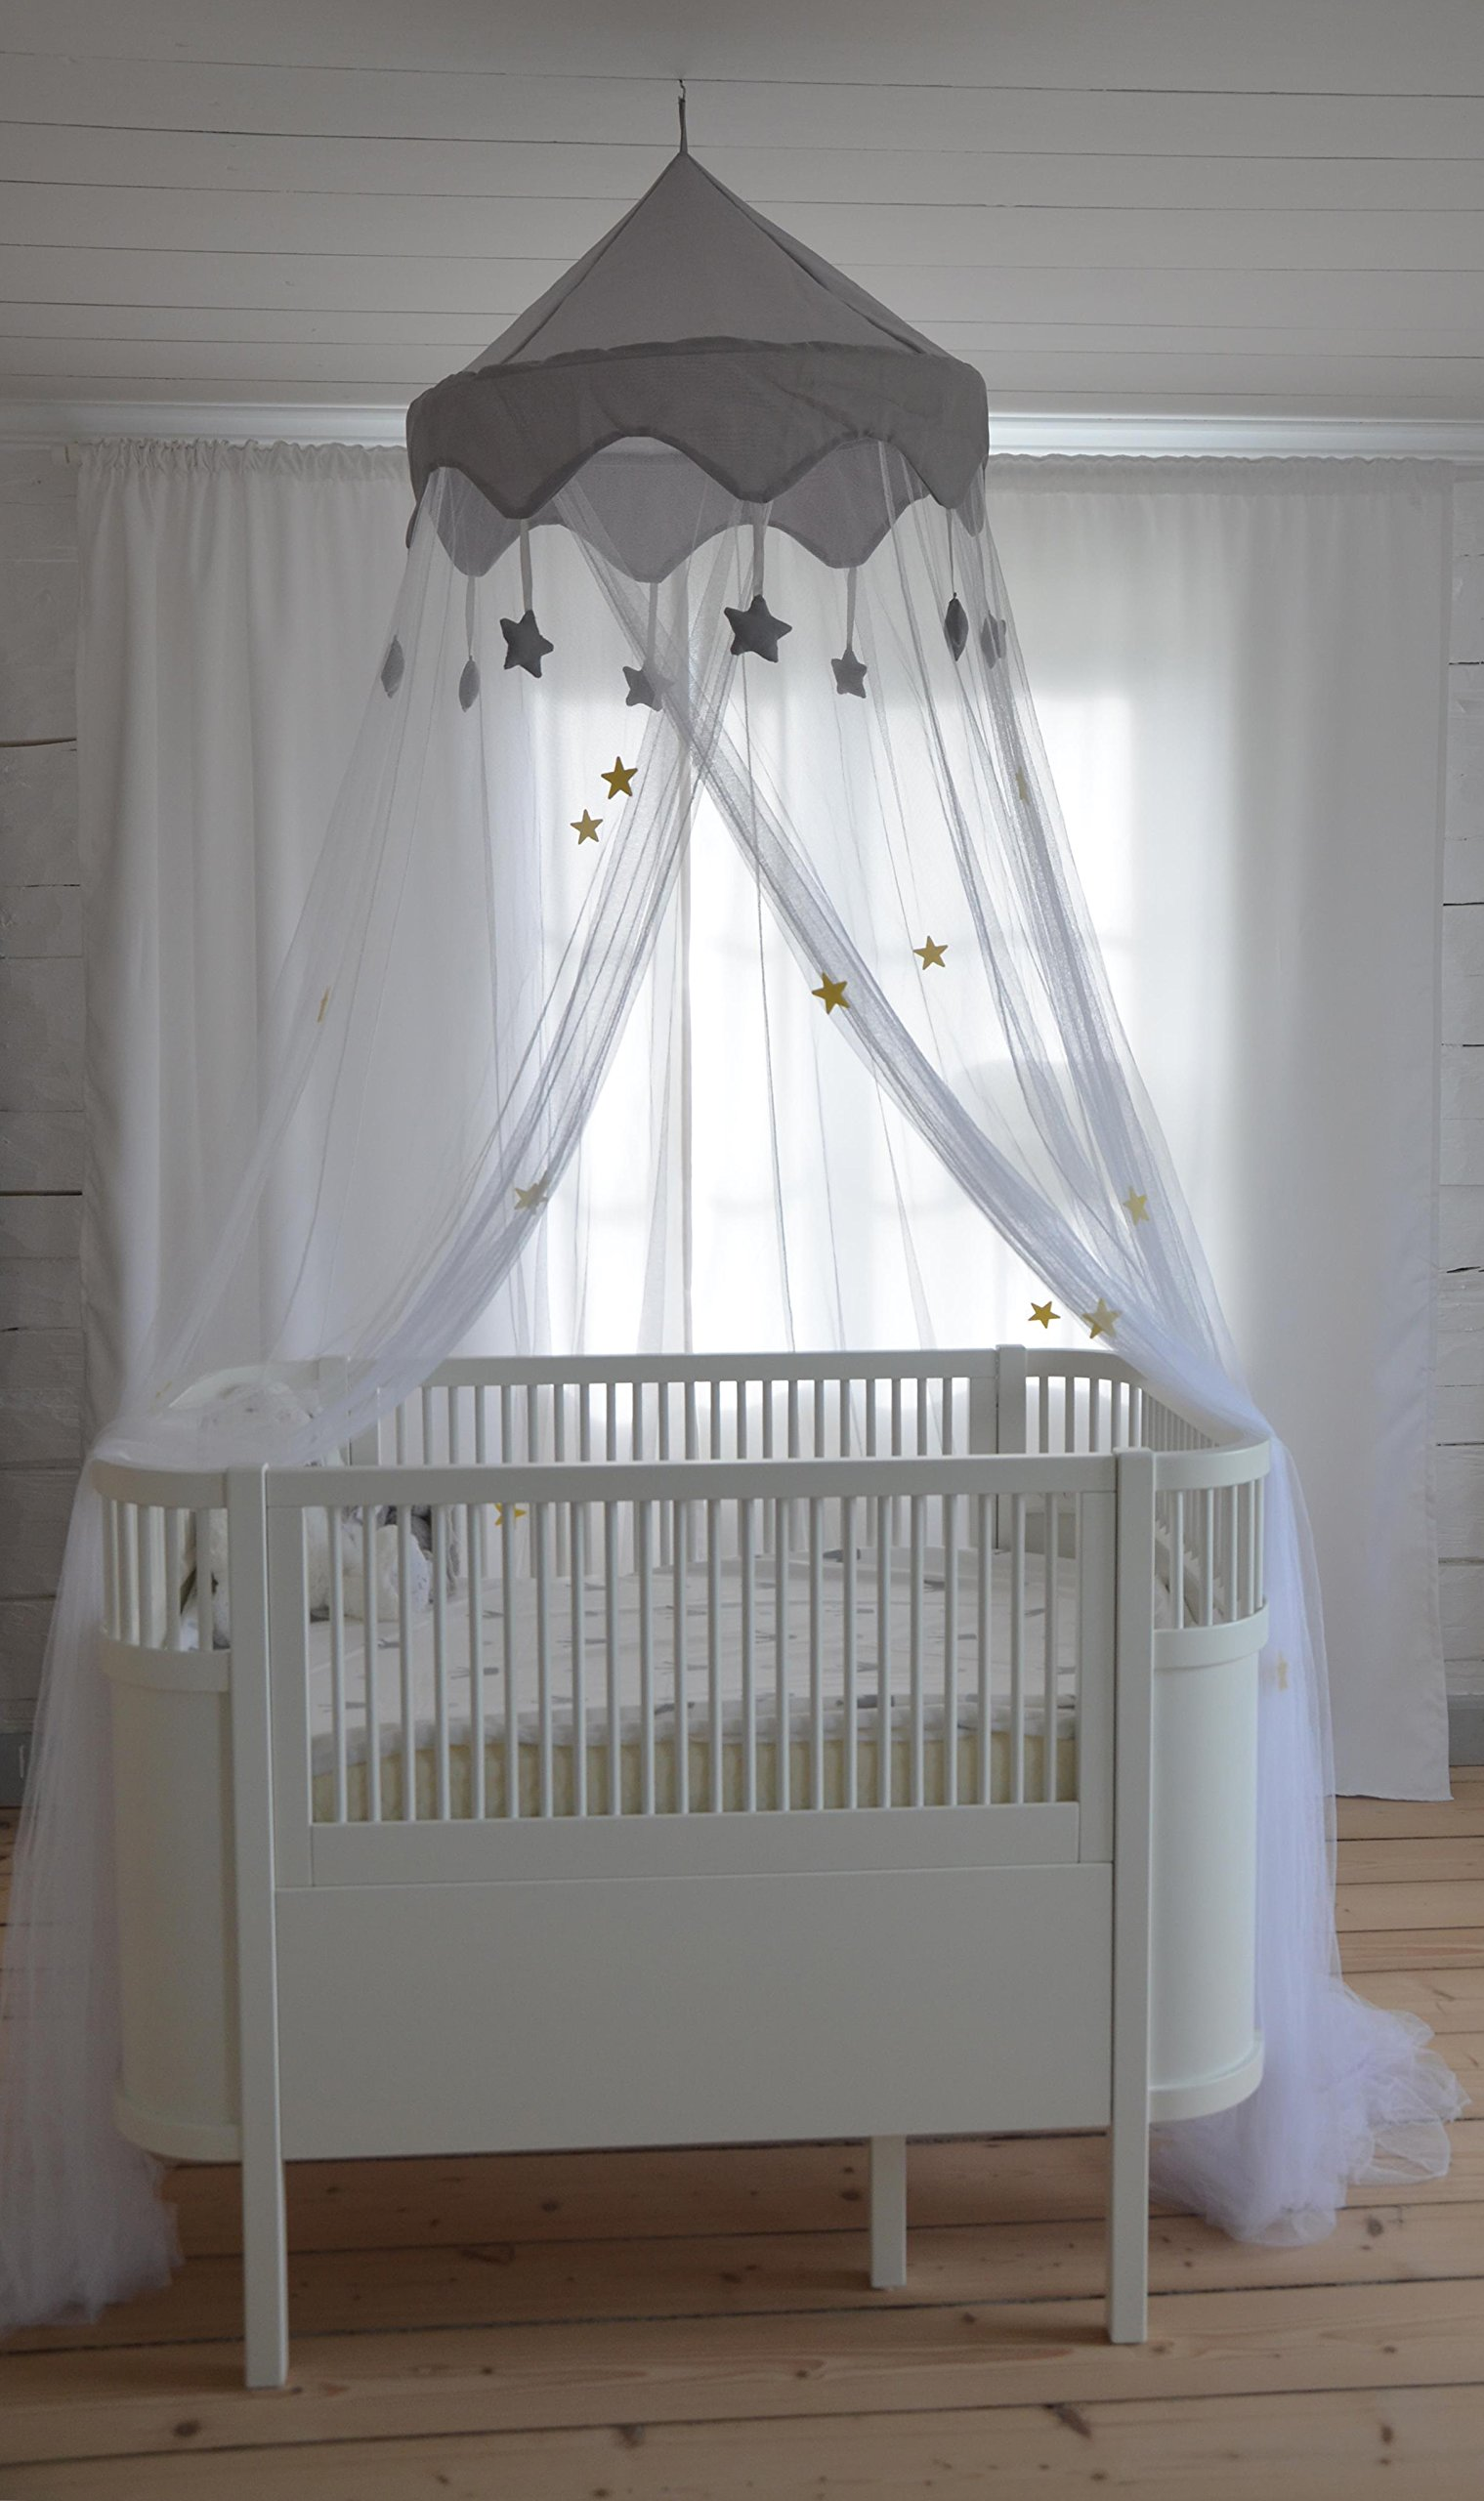 Nomad Nets Luxury Bed Canopy - Glowing Stars - Fits All Cribs and Beds - White Net - Gray Top-Crown - Hanging Above Bed Mosquito Net with Easy Installation Kit